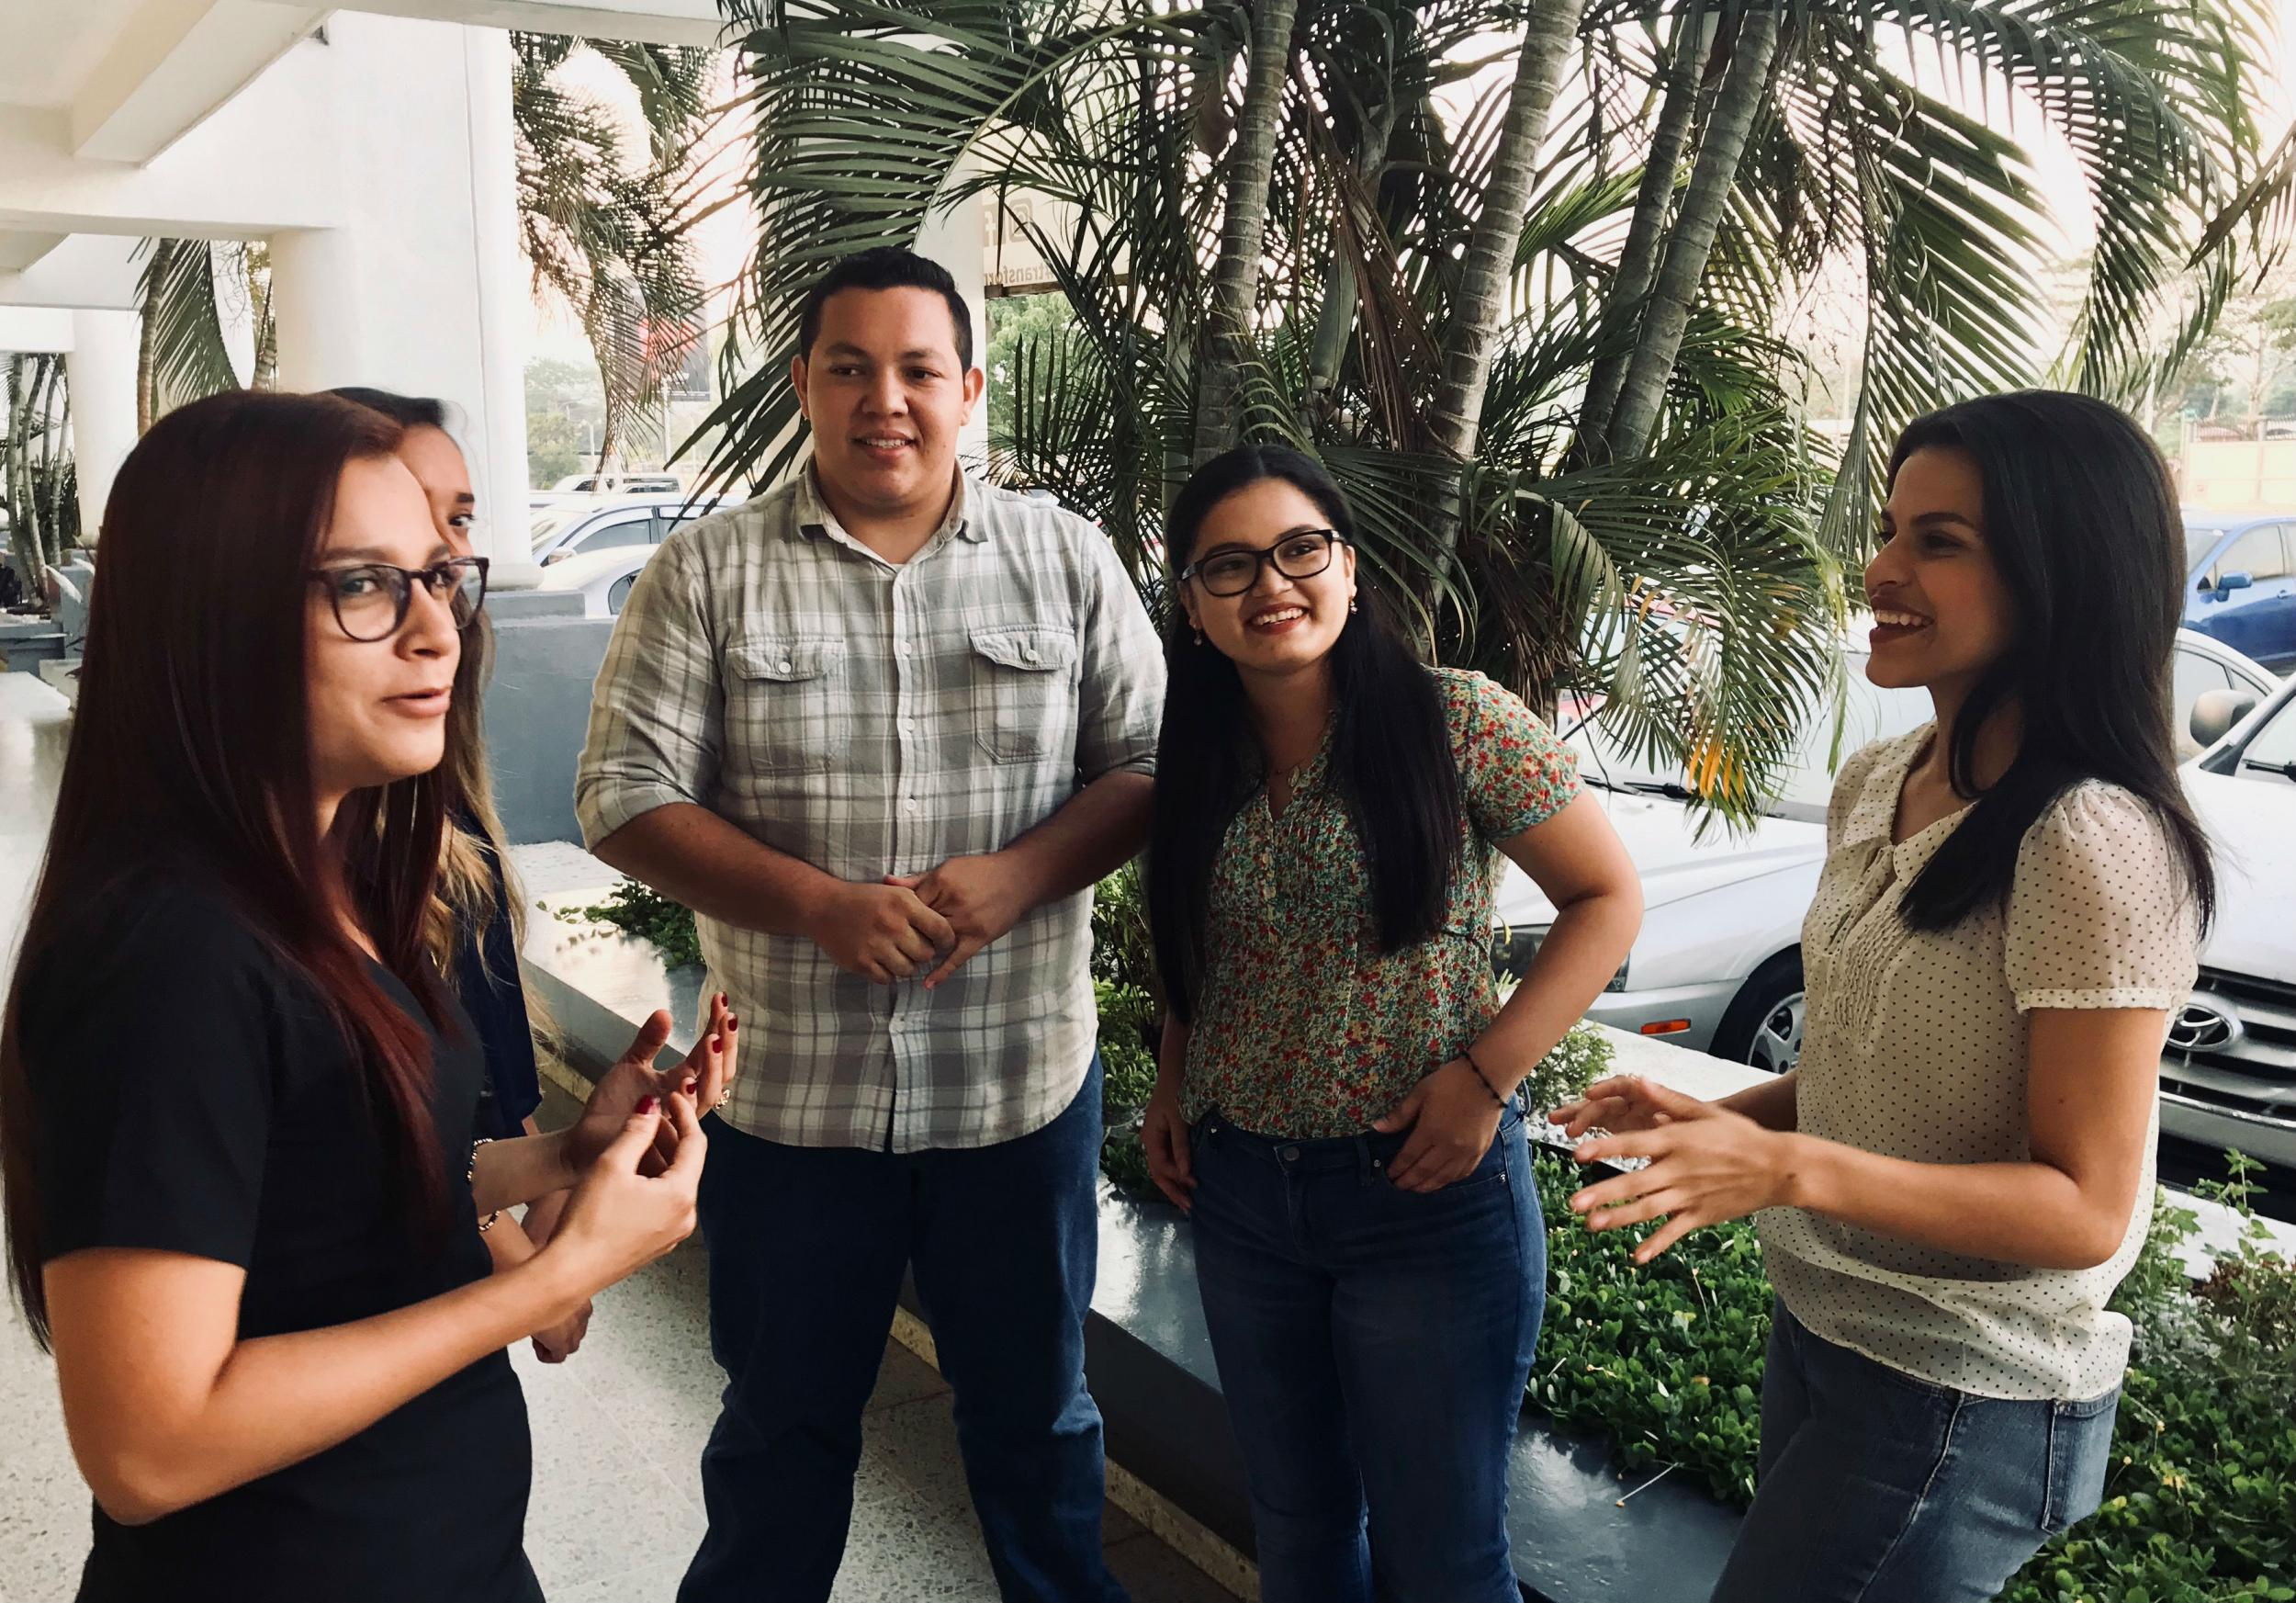 Honduras - latest news, breaking stories and comment - The